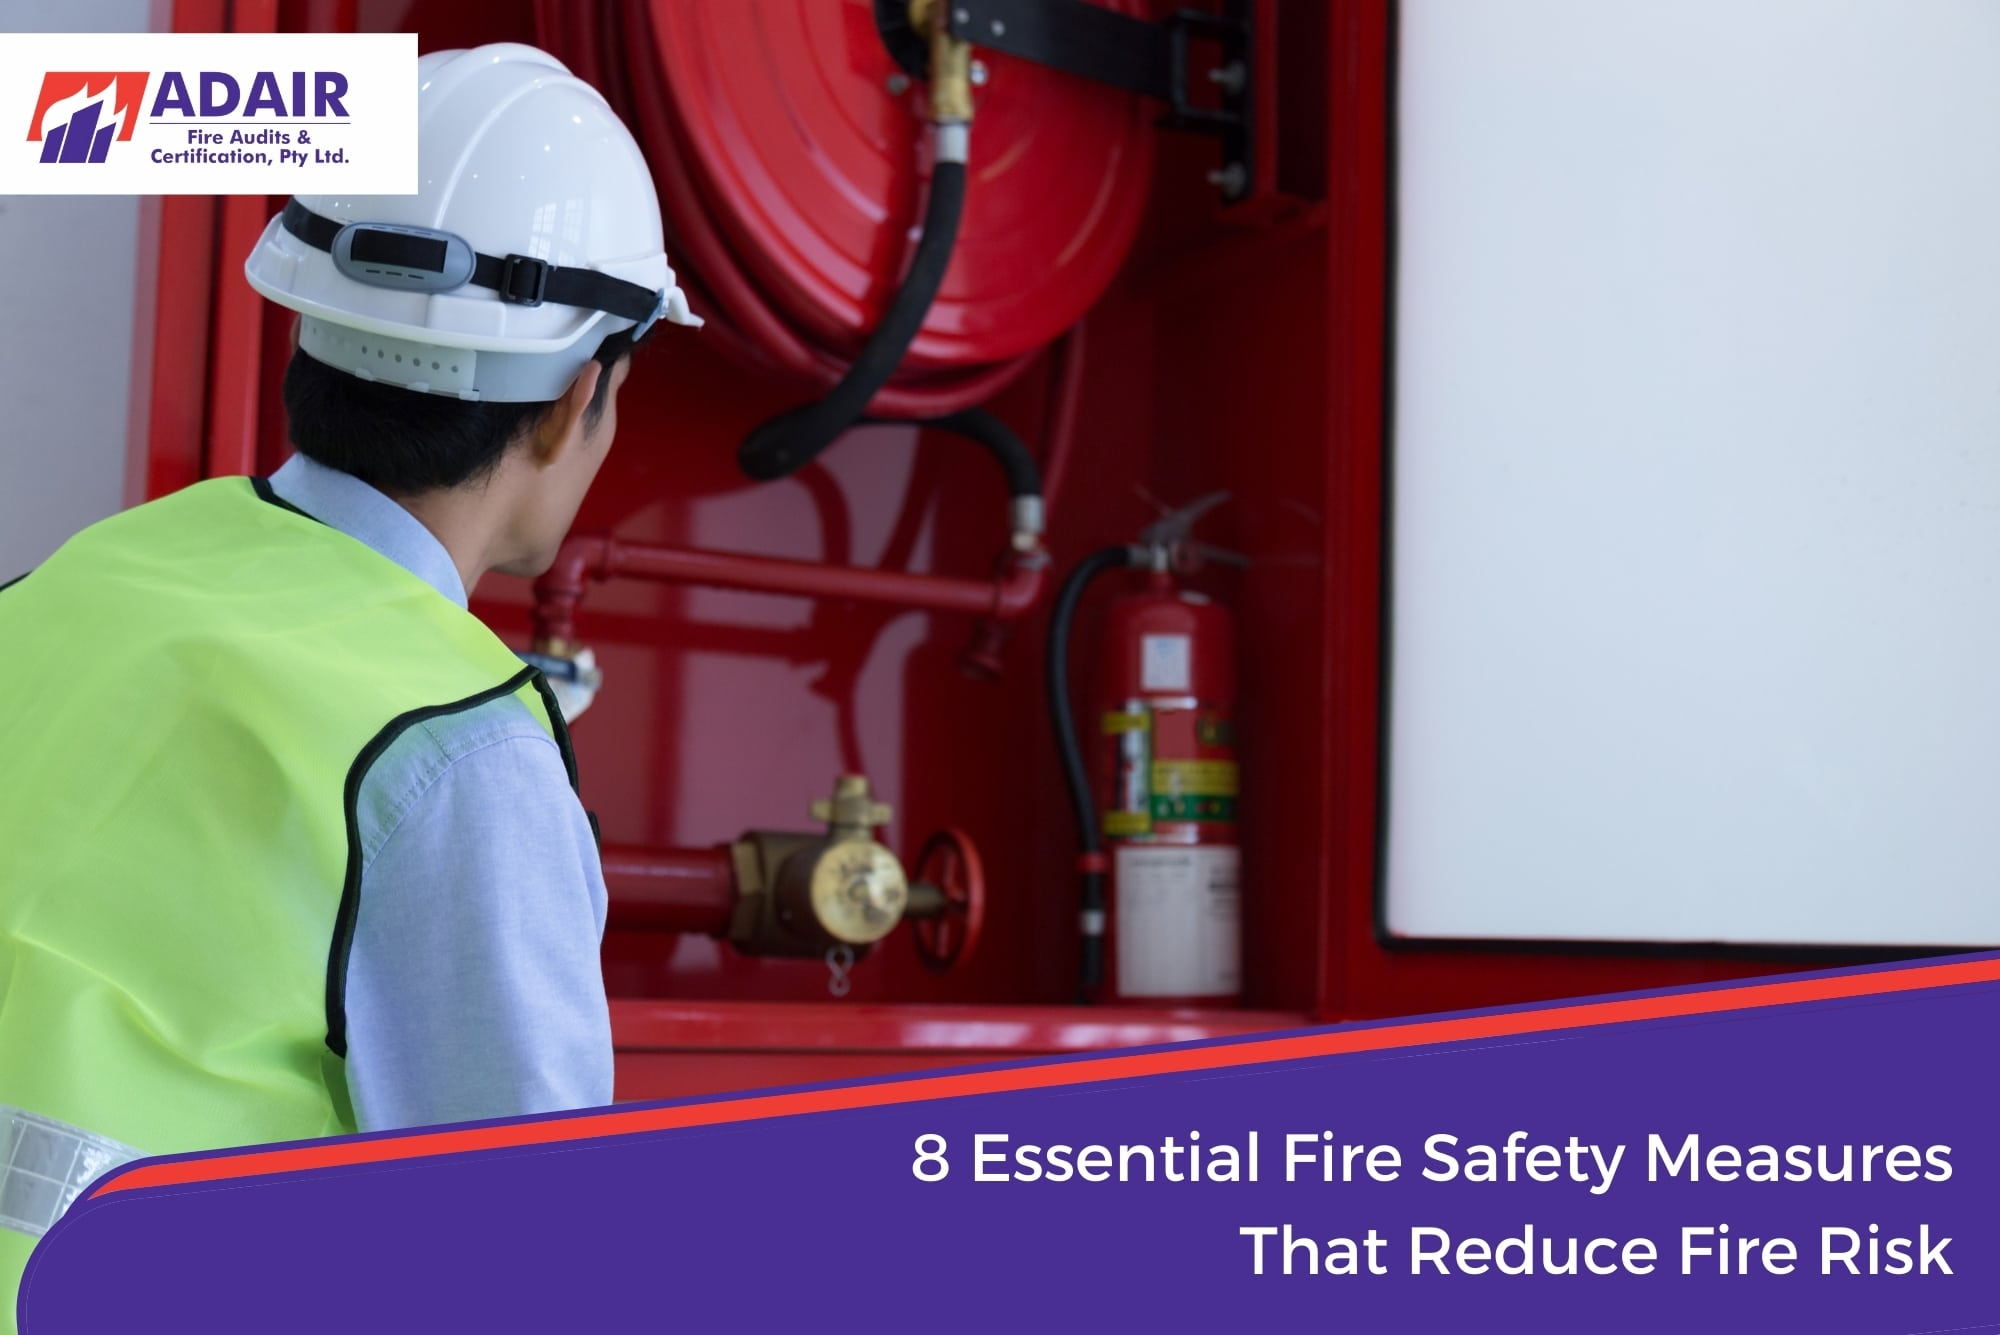 8 Essential Fire Safety Measures That Reduce Fire Risk